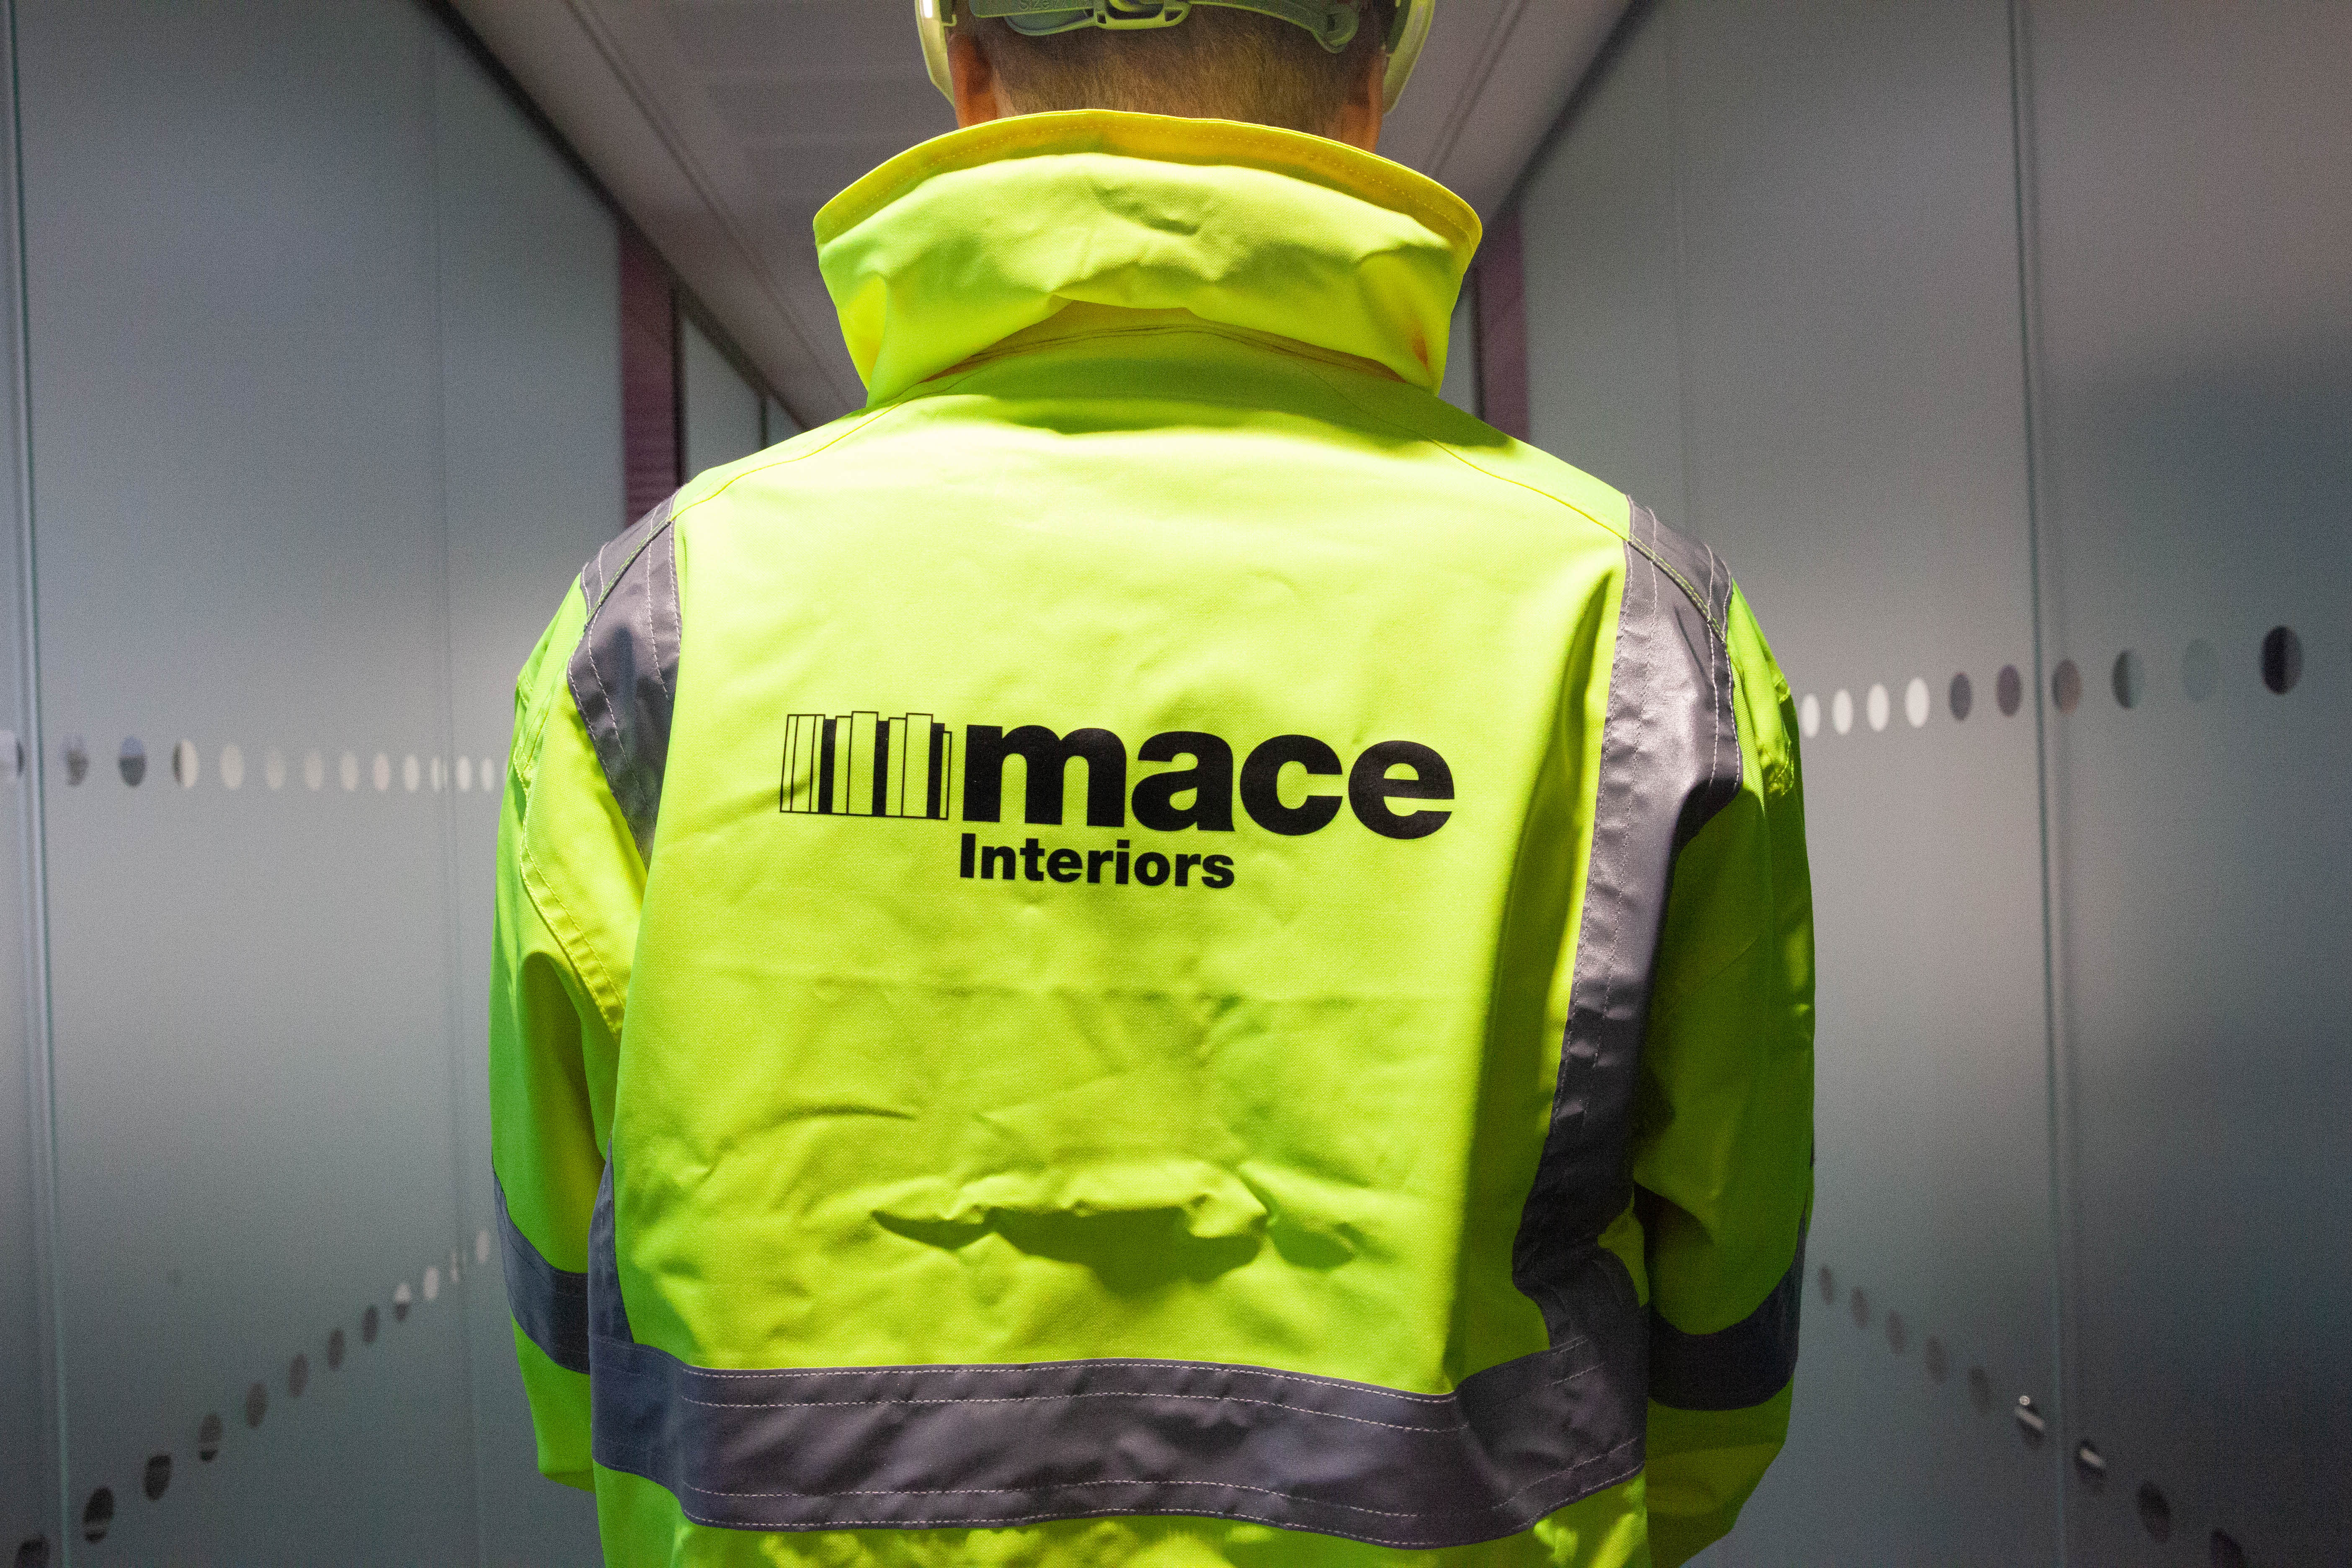 Mace appoints Stewart Ward and rebrand fit-out business as 'Mace Interiors'